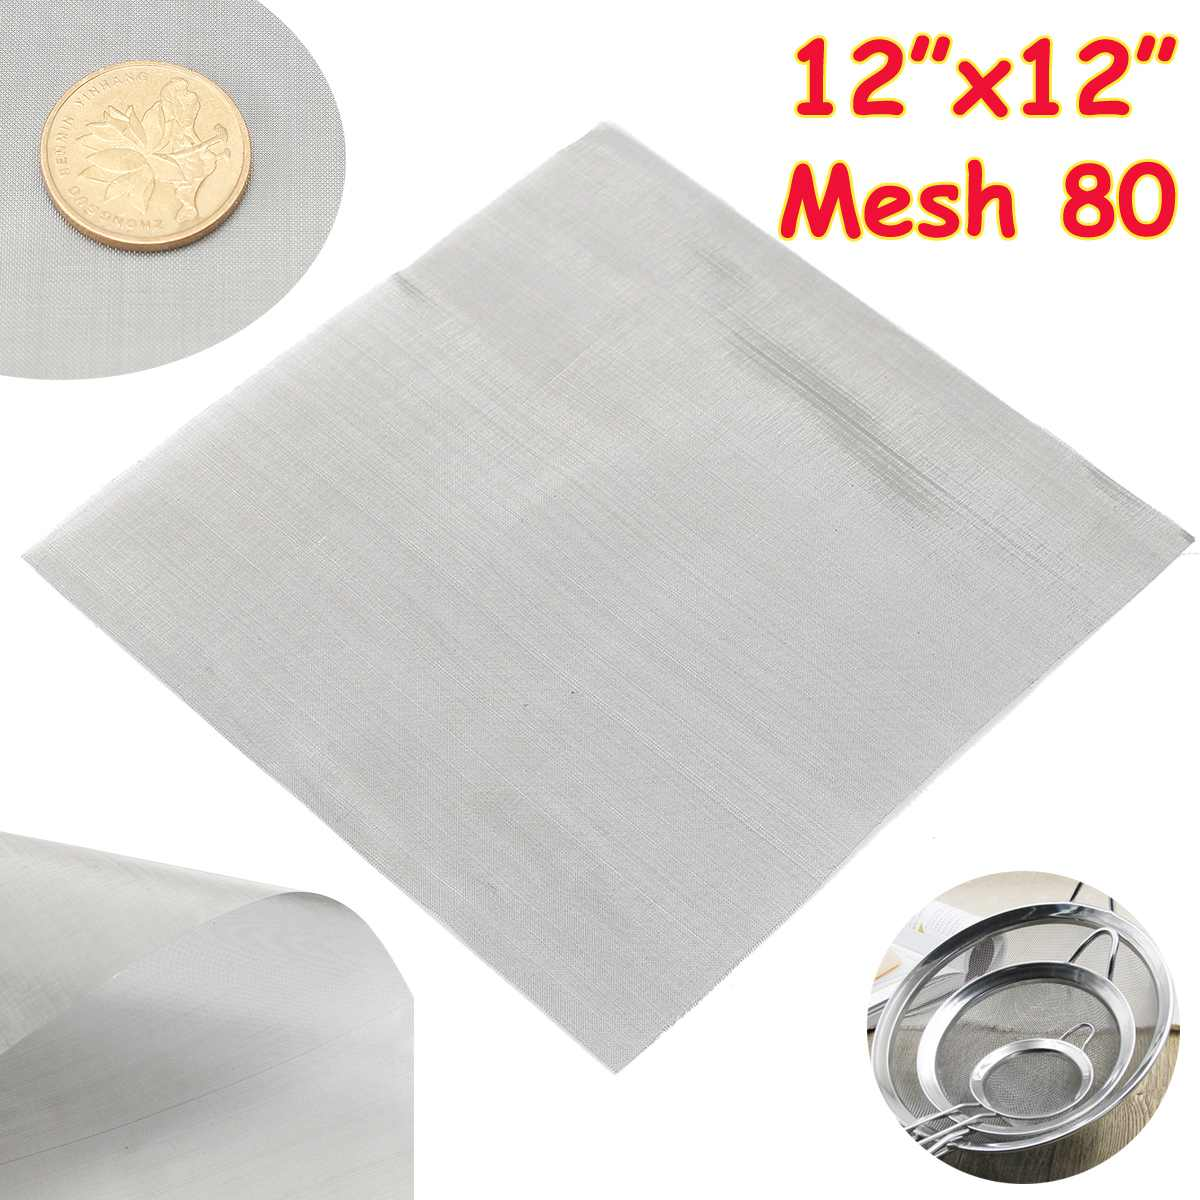 1pc 80 Mesh Woven Wire Cloth Screen Filtration 304 Stainless Steel 30x30cm with High Temperature Res